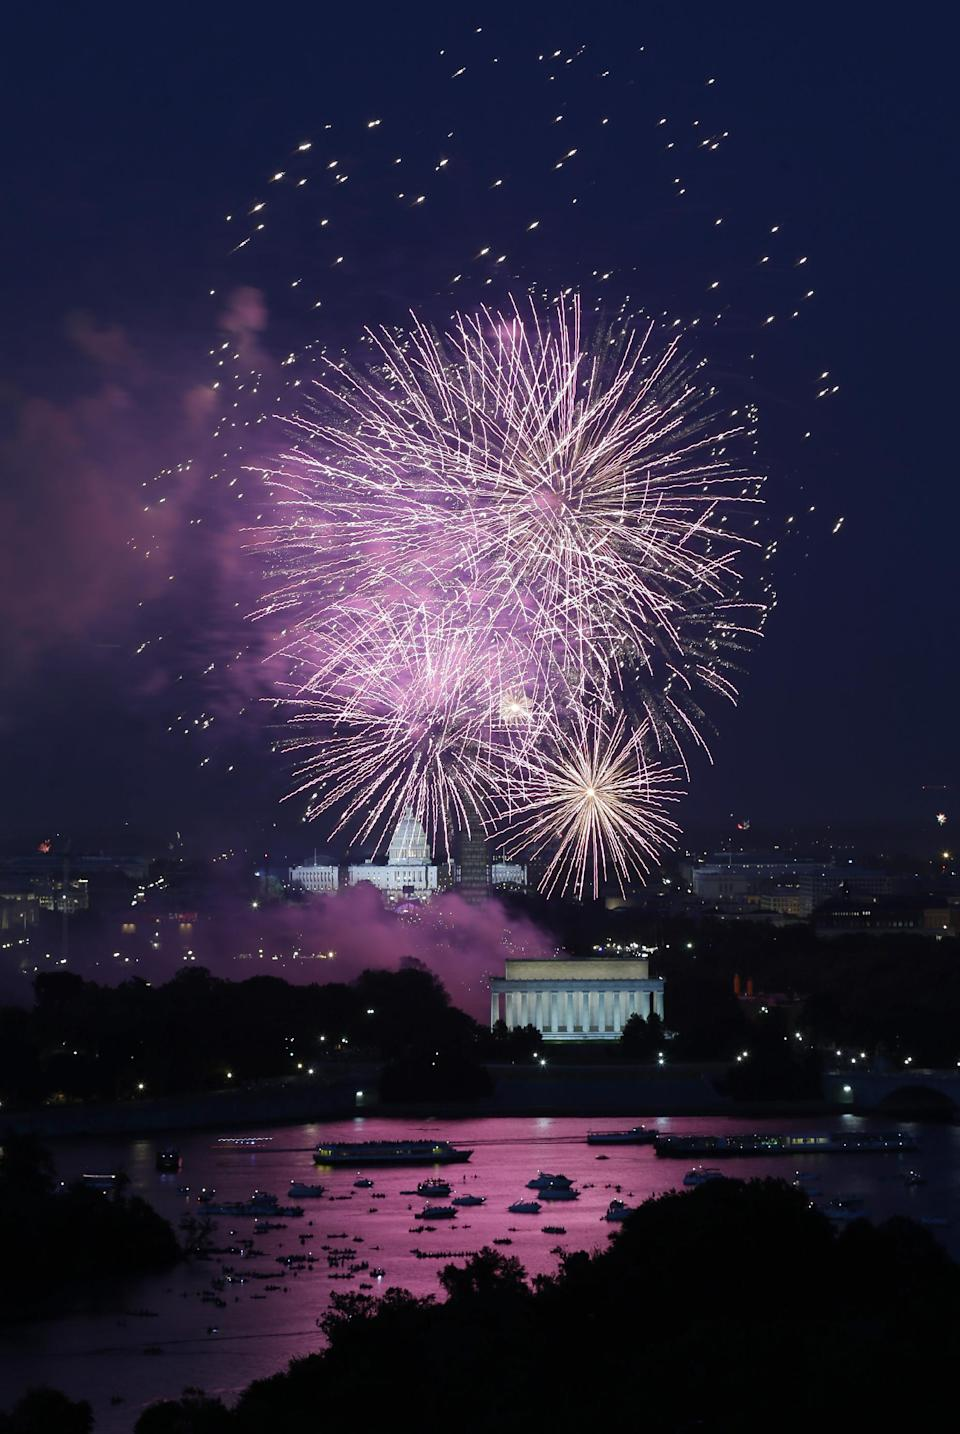 Fireworks light the sky over the U.S. Capitol, left, the Washington Monument and the Lincoln Memorial during Fourth of July celebrations, Thursday, July 4, 2013 in Washington. Surrounded by scaffolding, the Washington Monument is closed for repairs after an earthquake in 2011. (AP Photo/Alex Brandon)